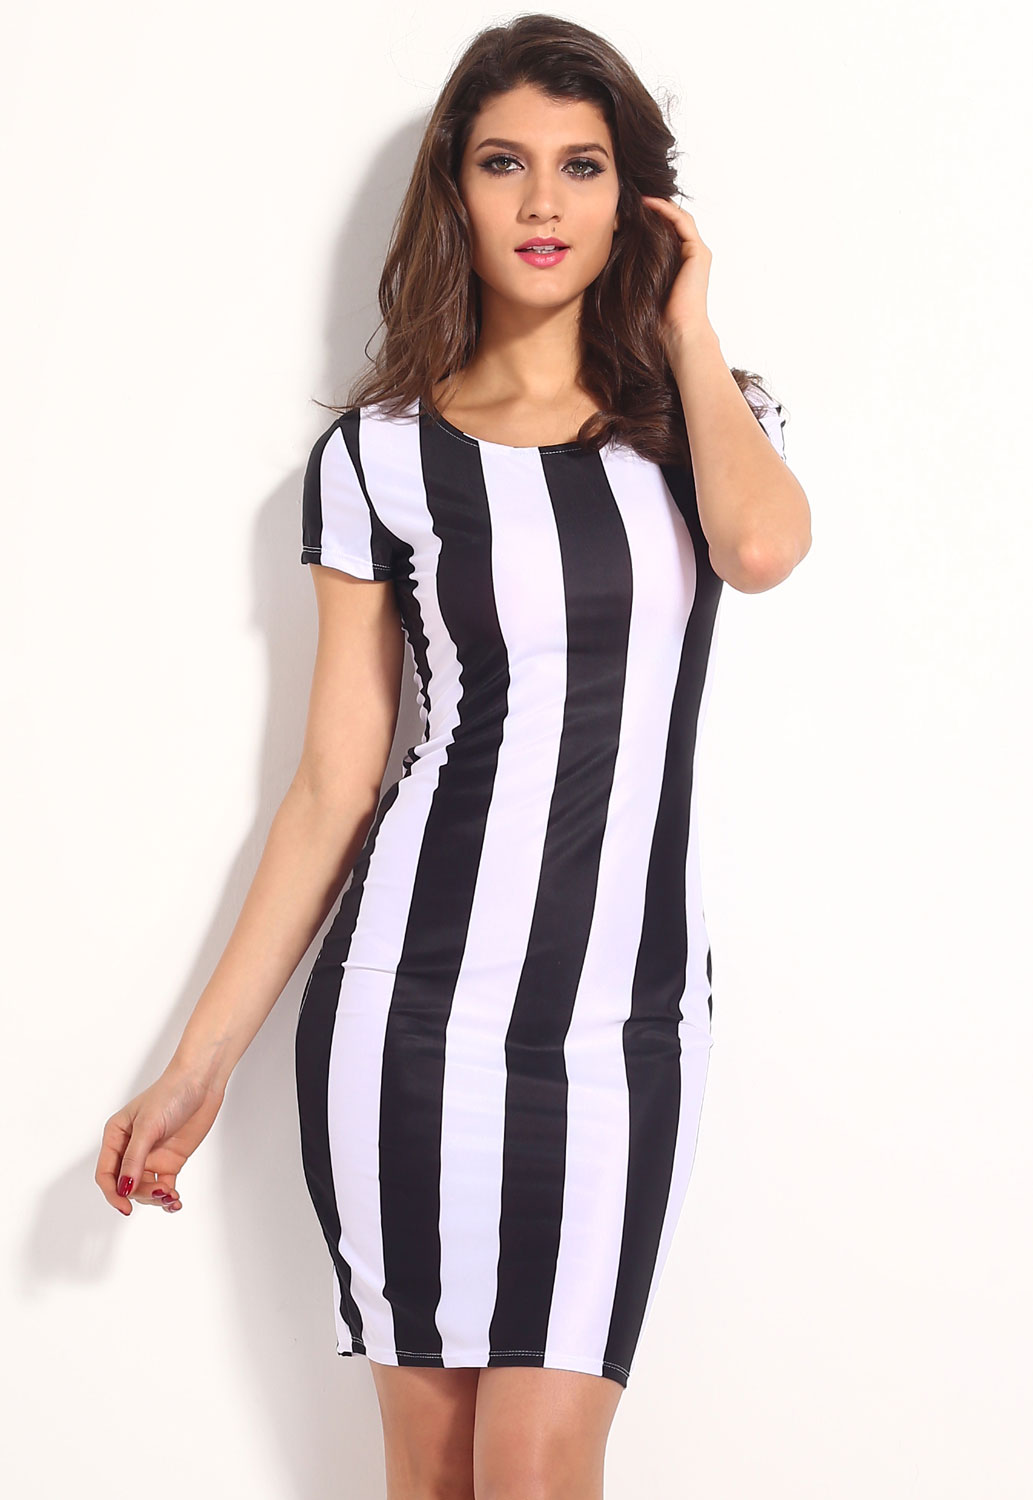 Classic Black White Vertical Stripes Midi Dress